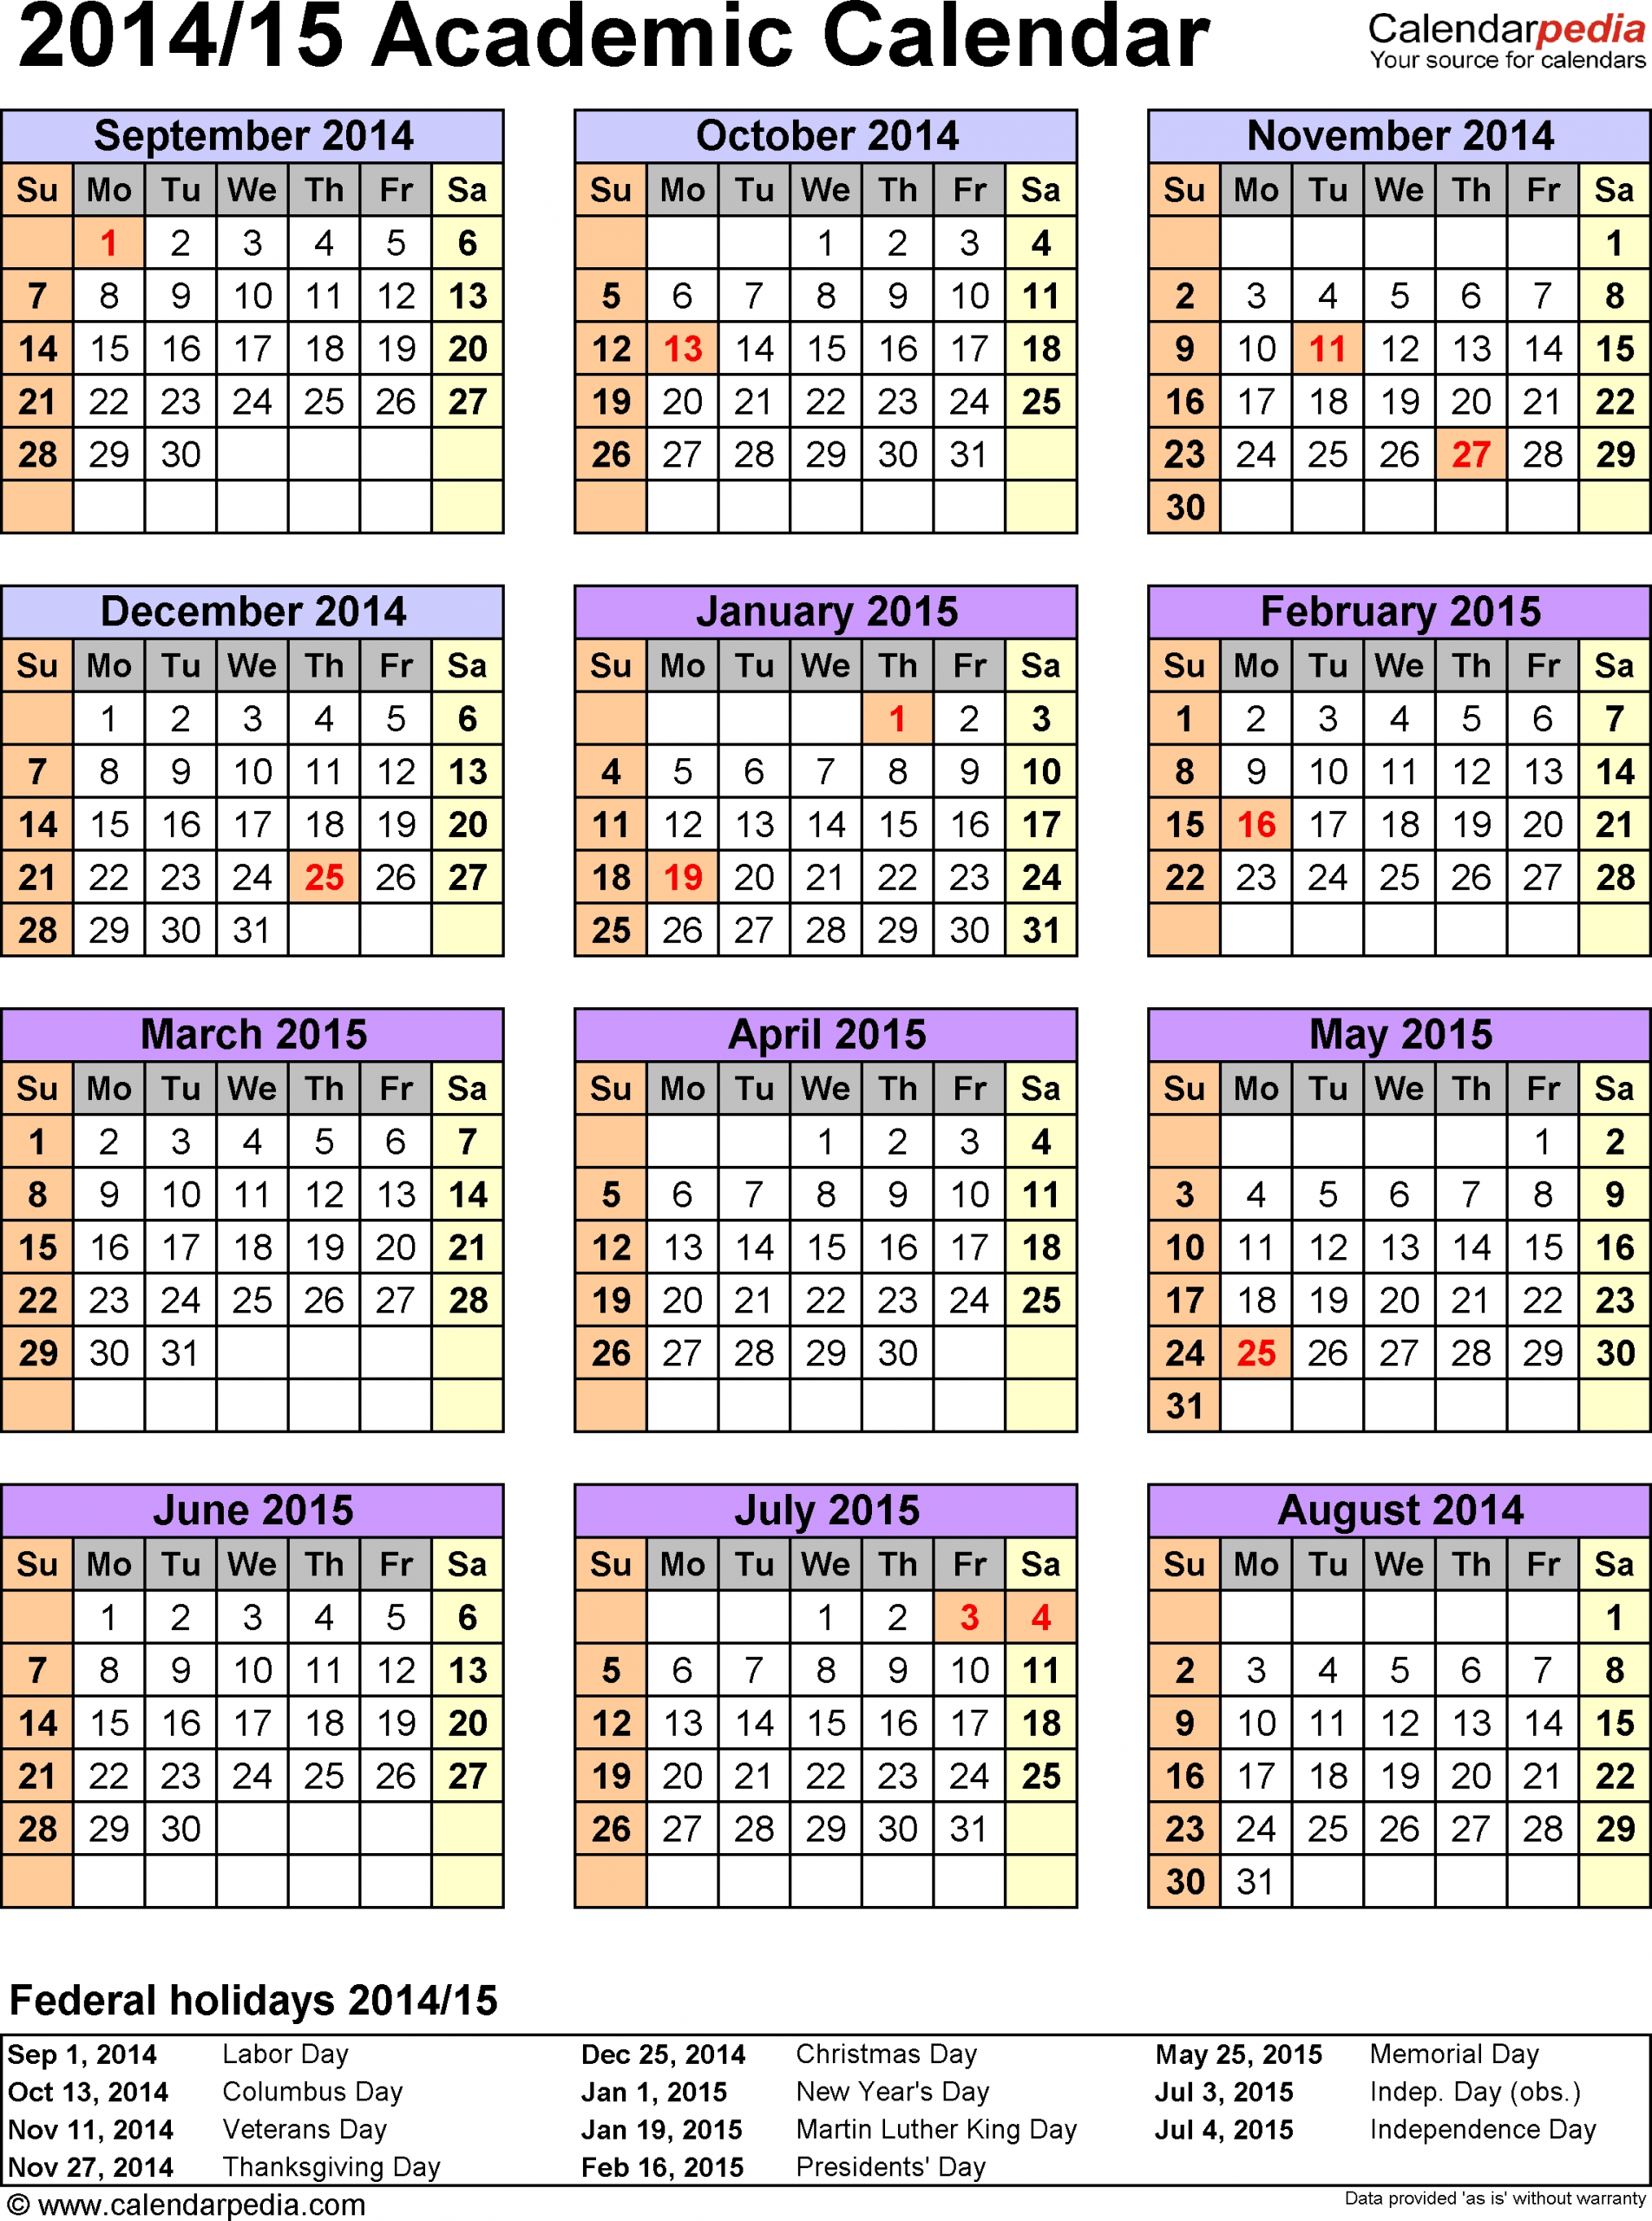 Academic Calendar-Cds | Department Of Education